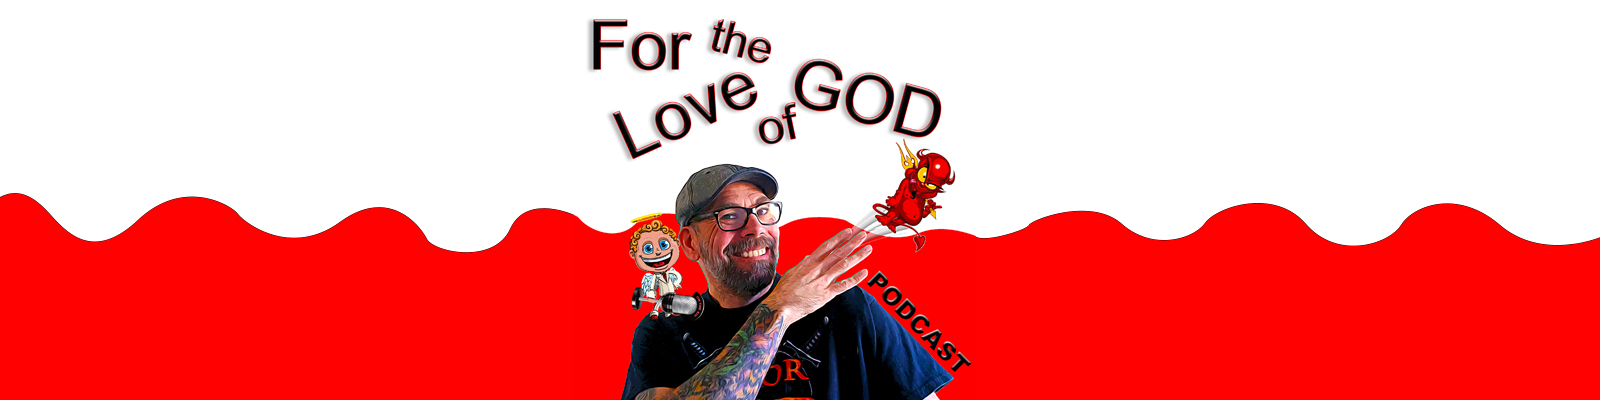 For the Love of God Podcast Newsletter Signup